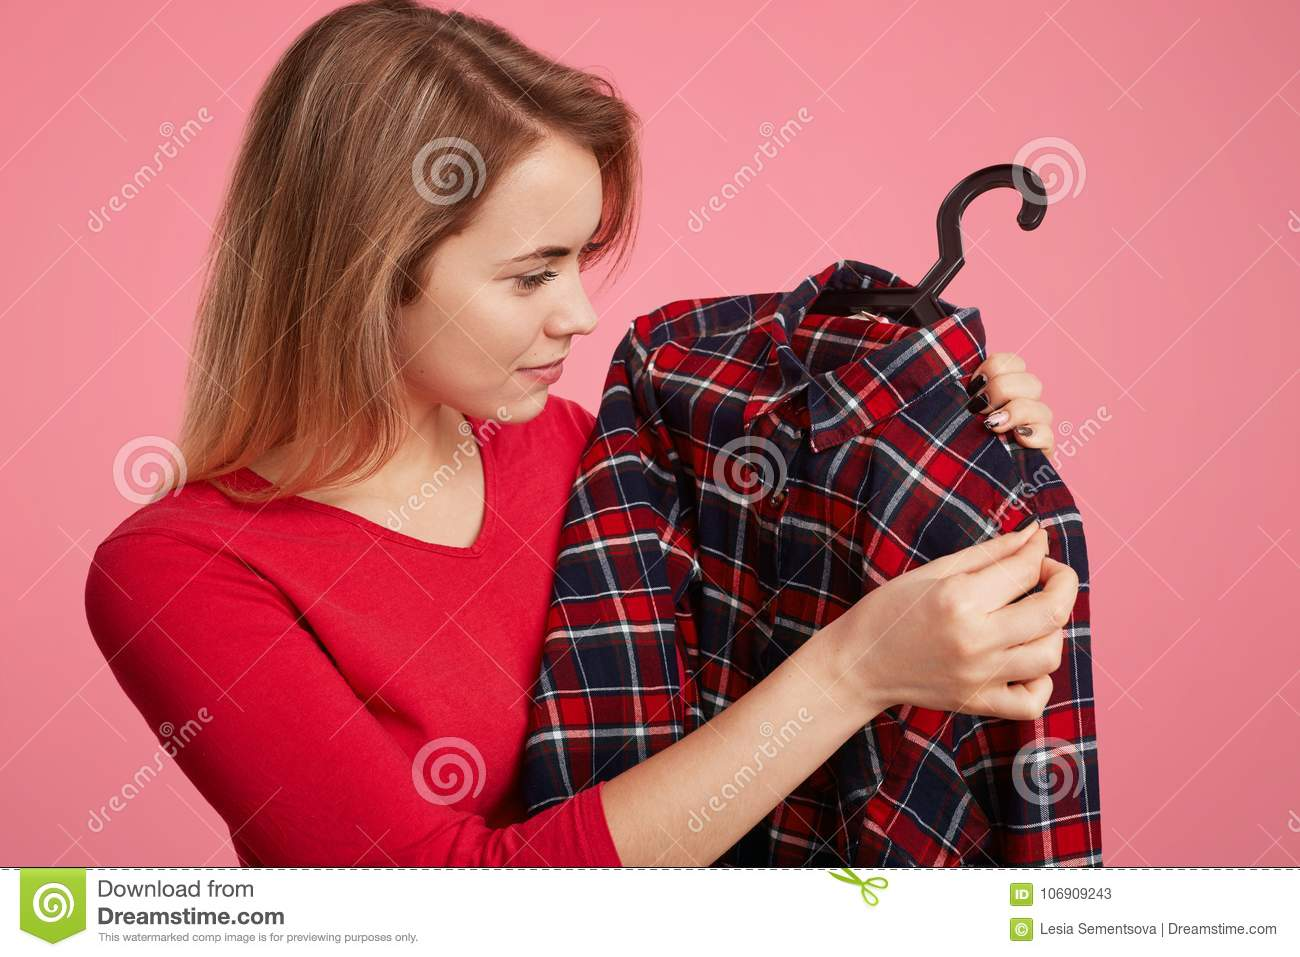 Sideways portrait of pleasant looking young female chooses new outfit, looks on checkered chemise on hangers, rejoice new purchase